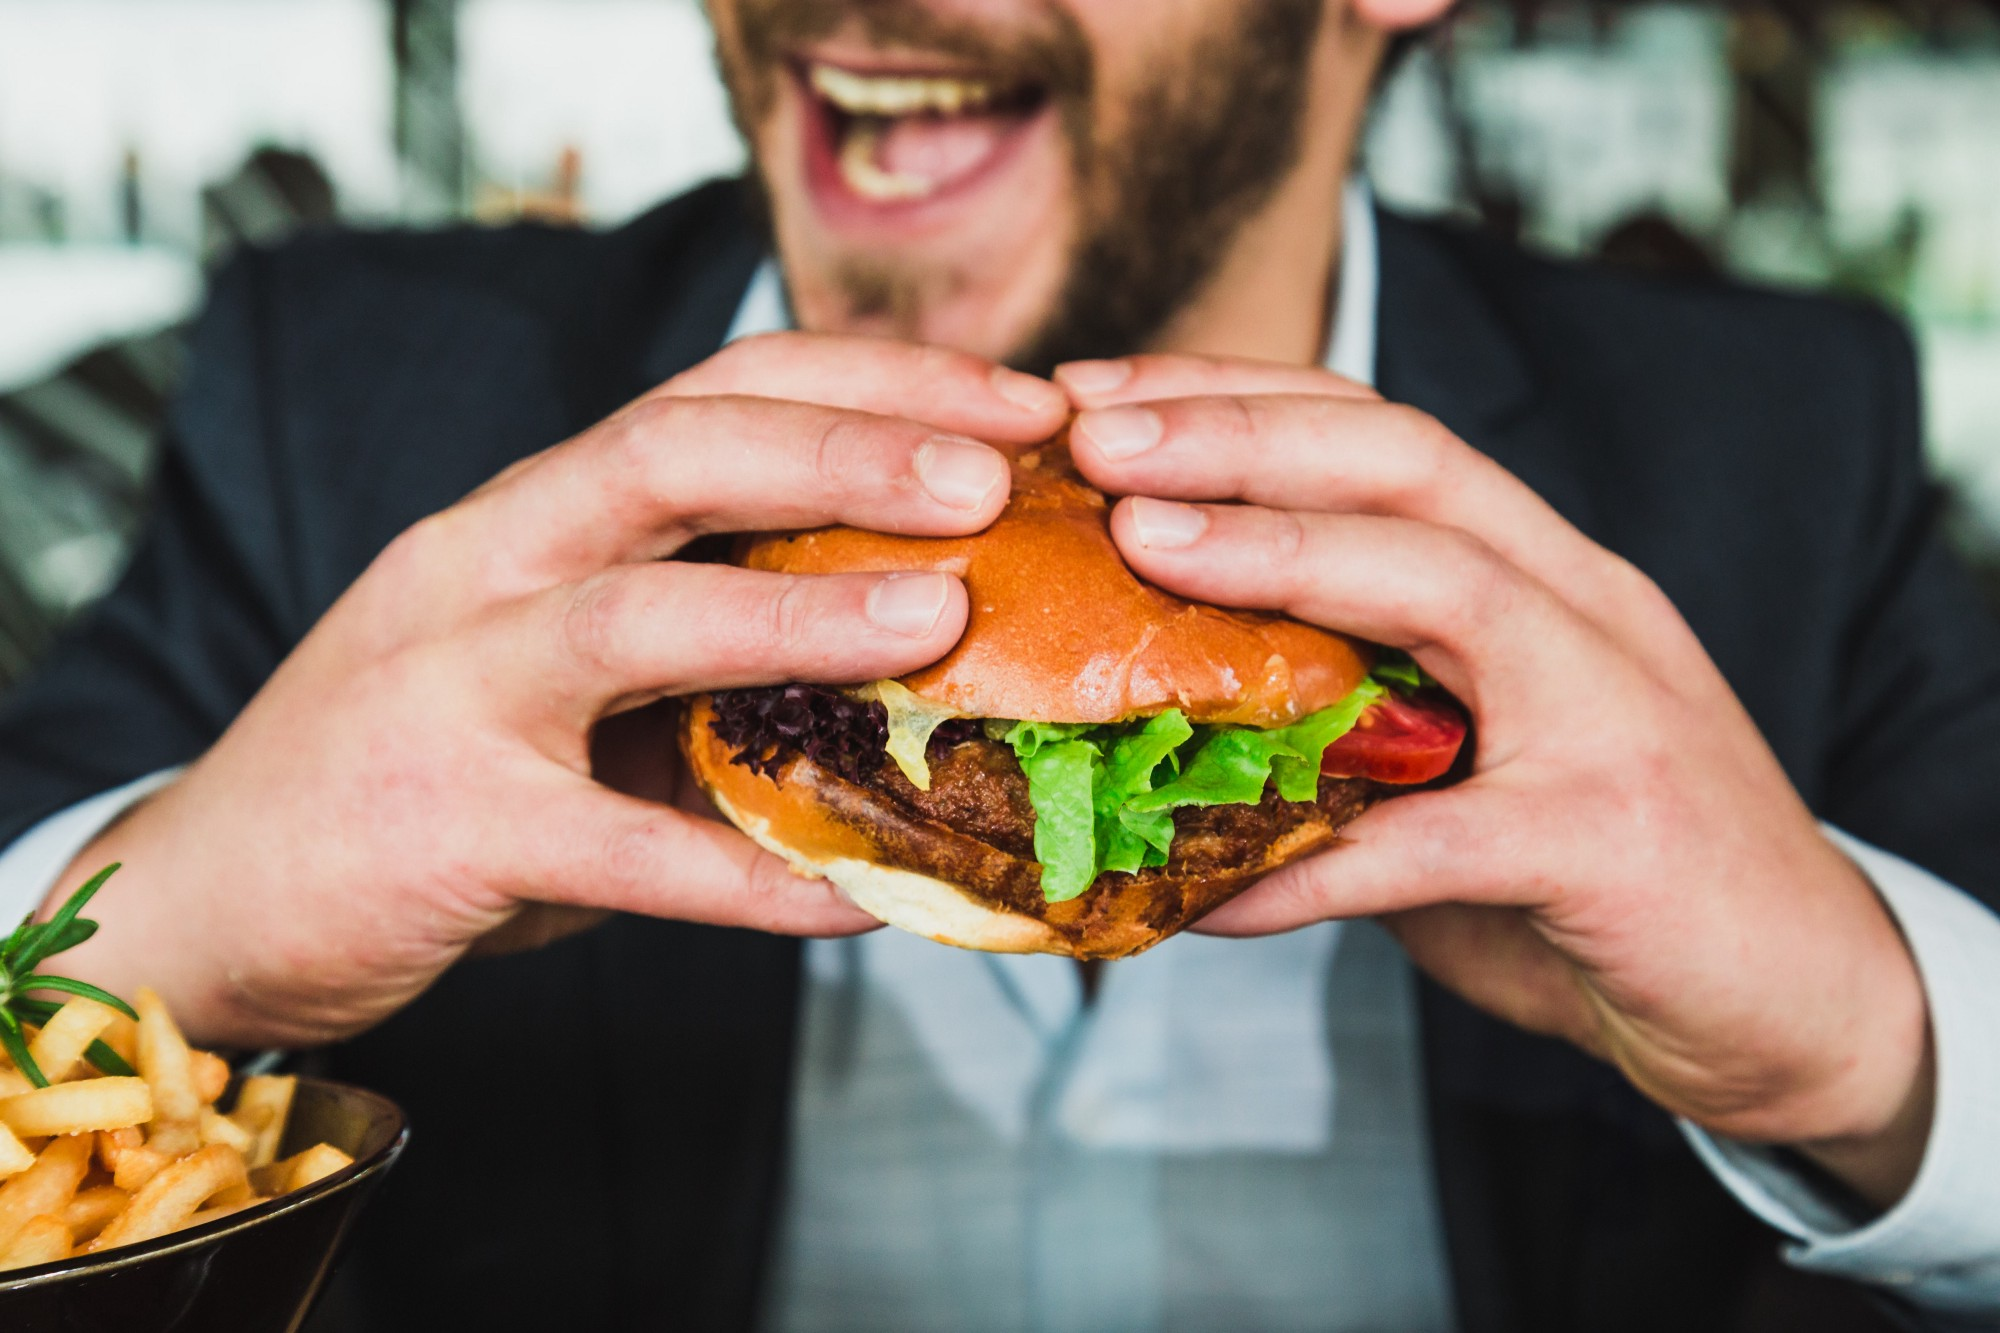 A well-dressed man holds a hamburger, about to chew. He is smiling. The burger is probably not synthetic meat.